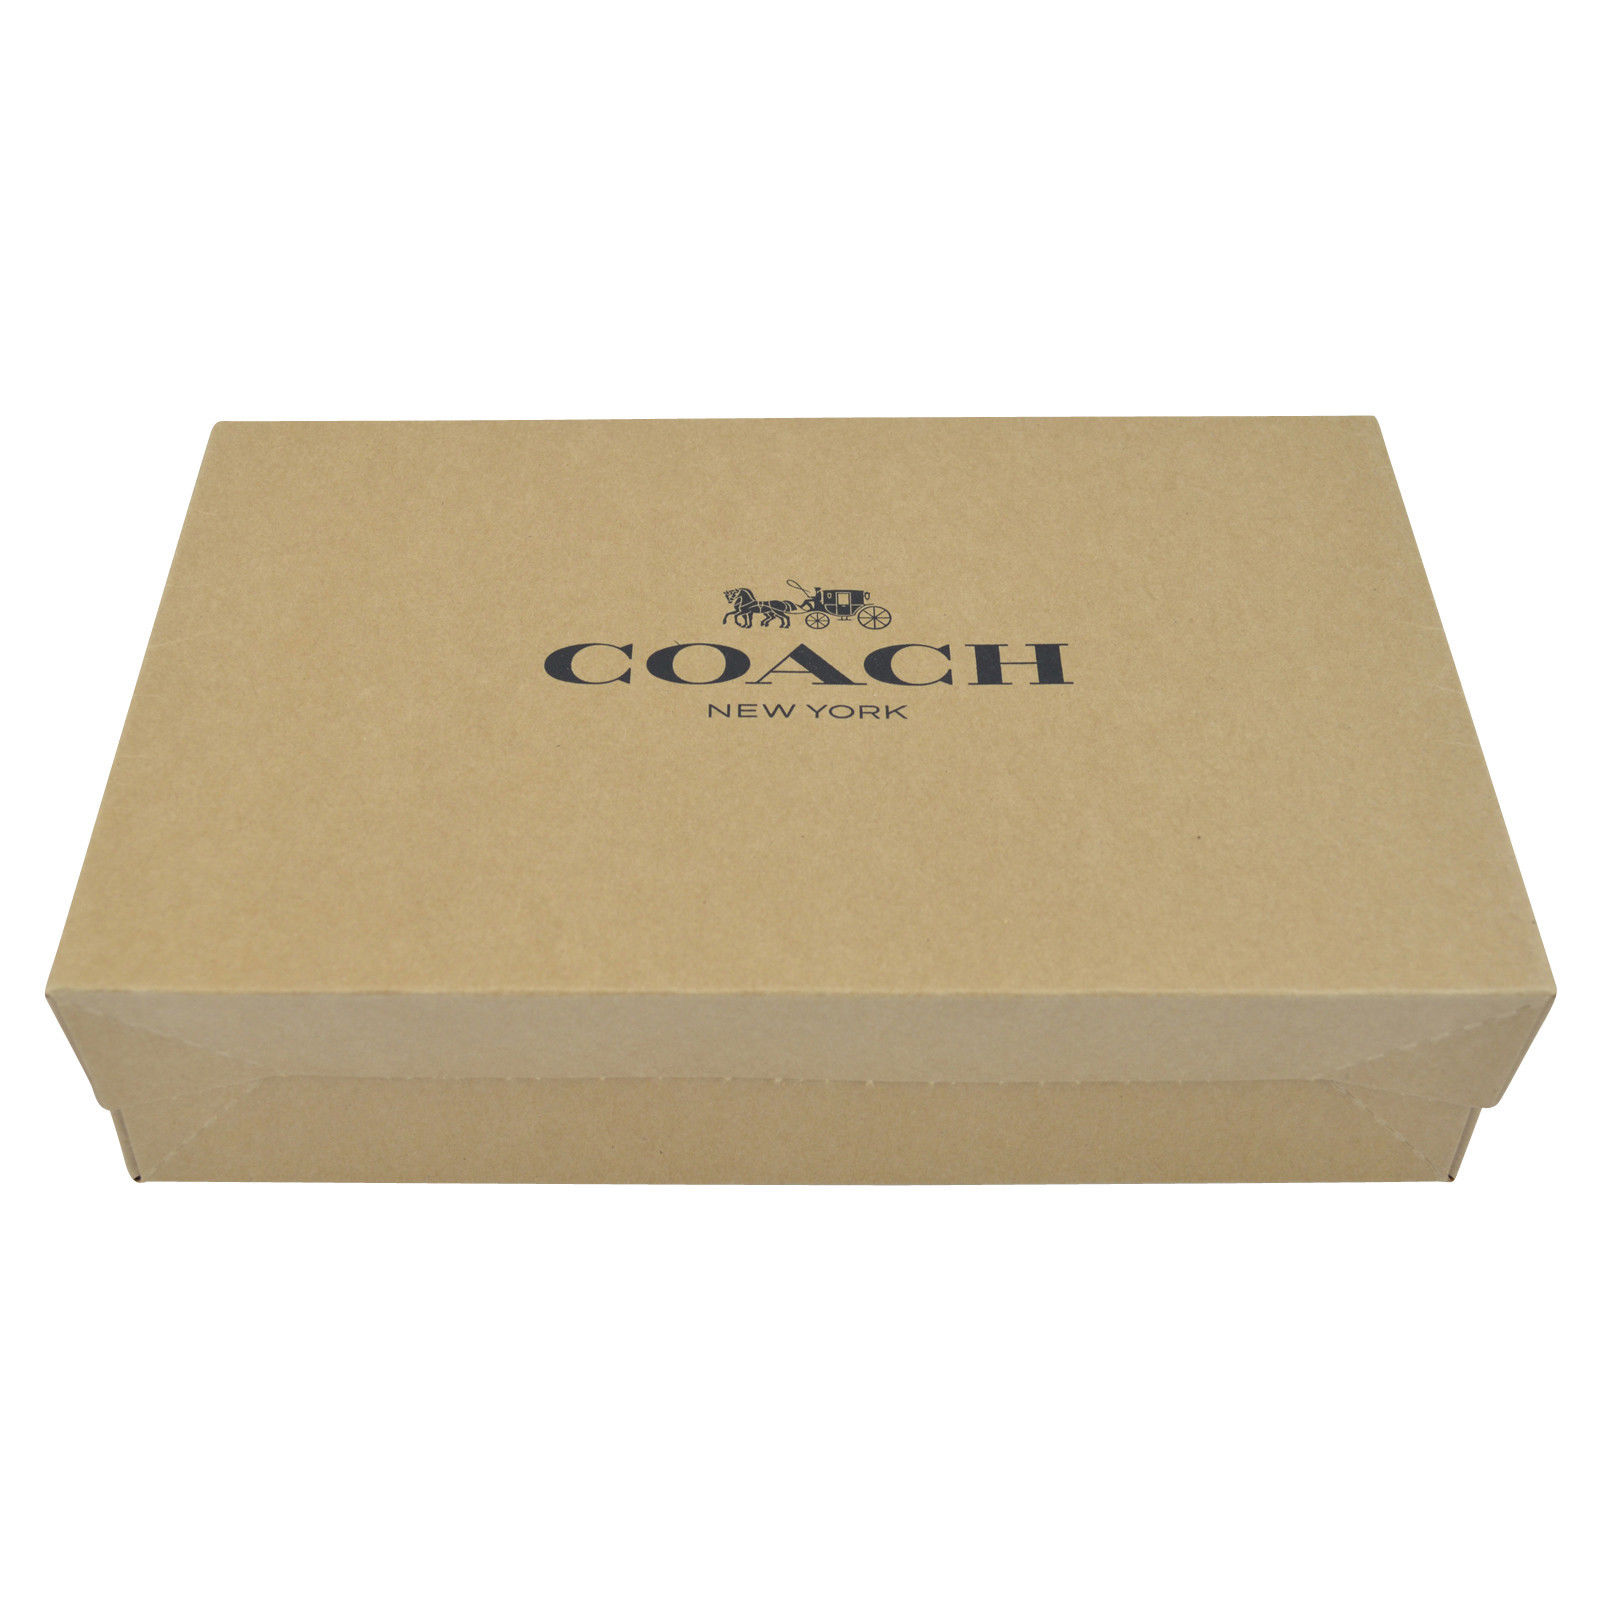 Coach Medium Gift Box For Wallets, Wristlets White # GB3